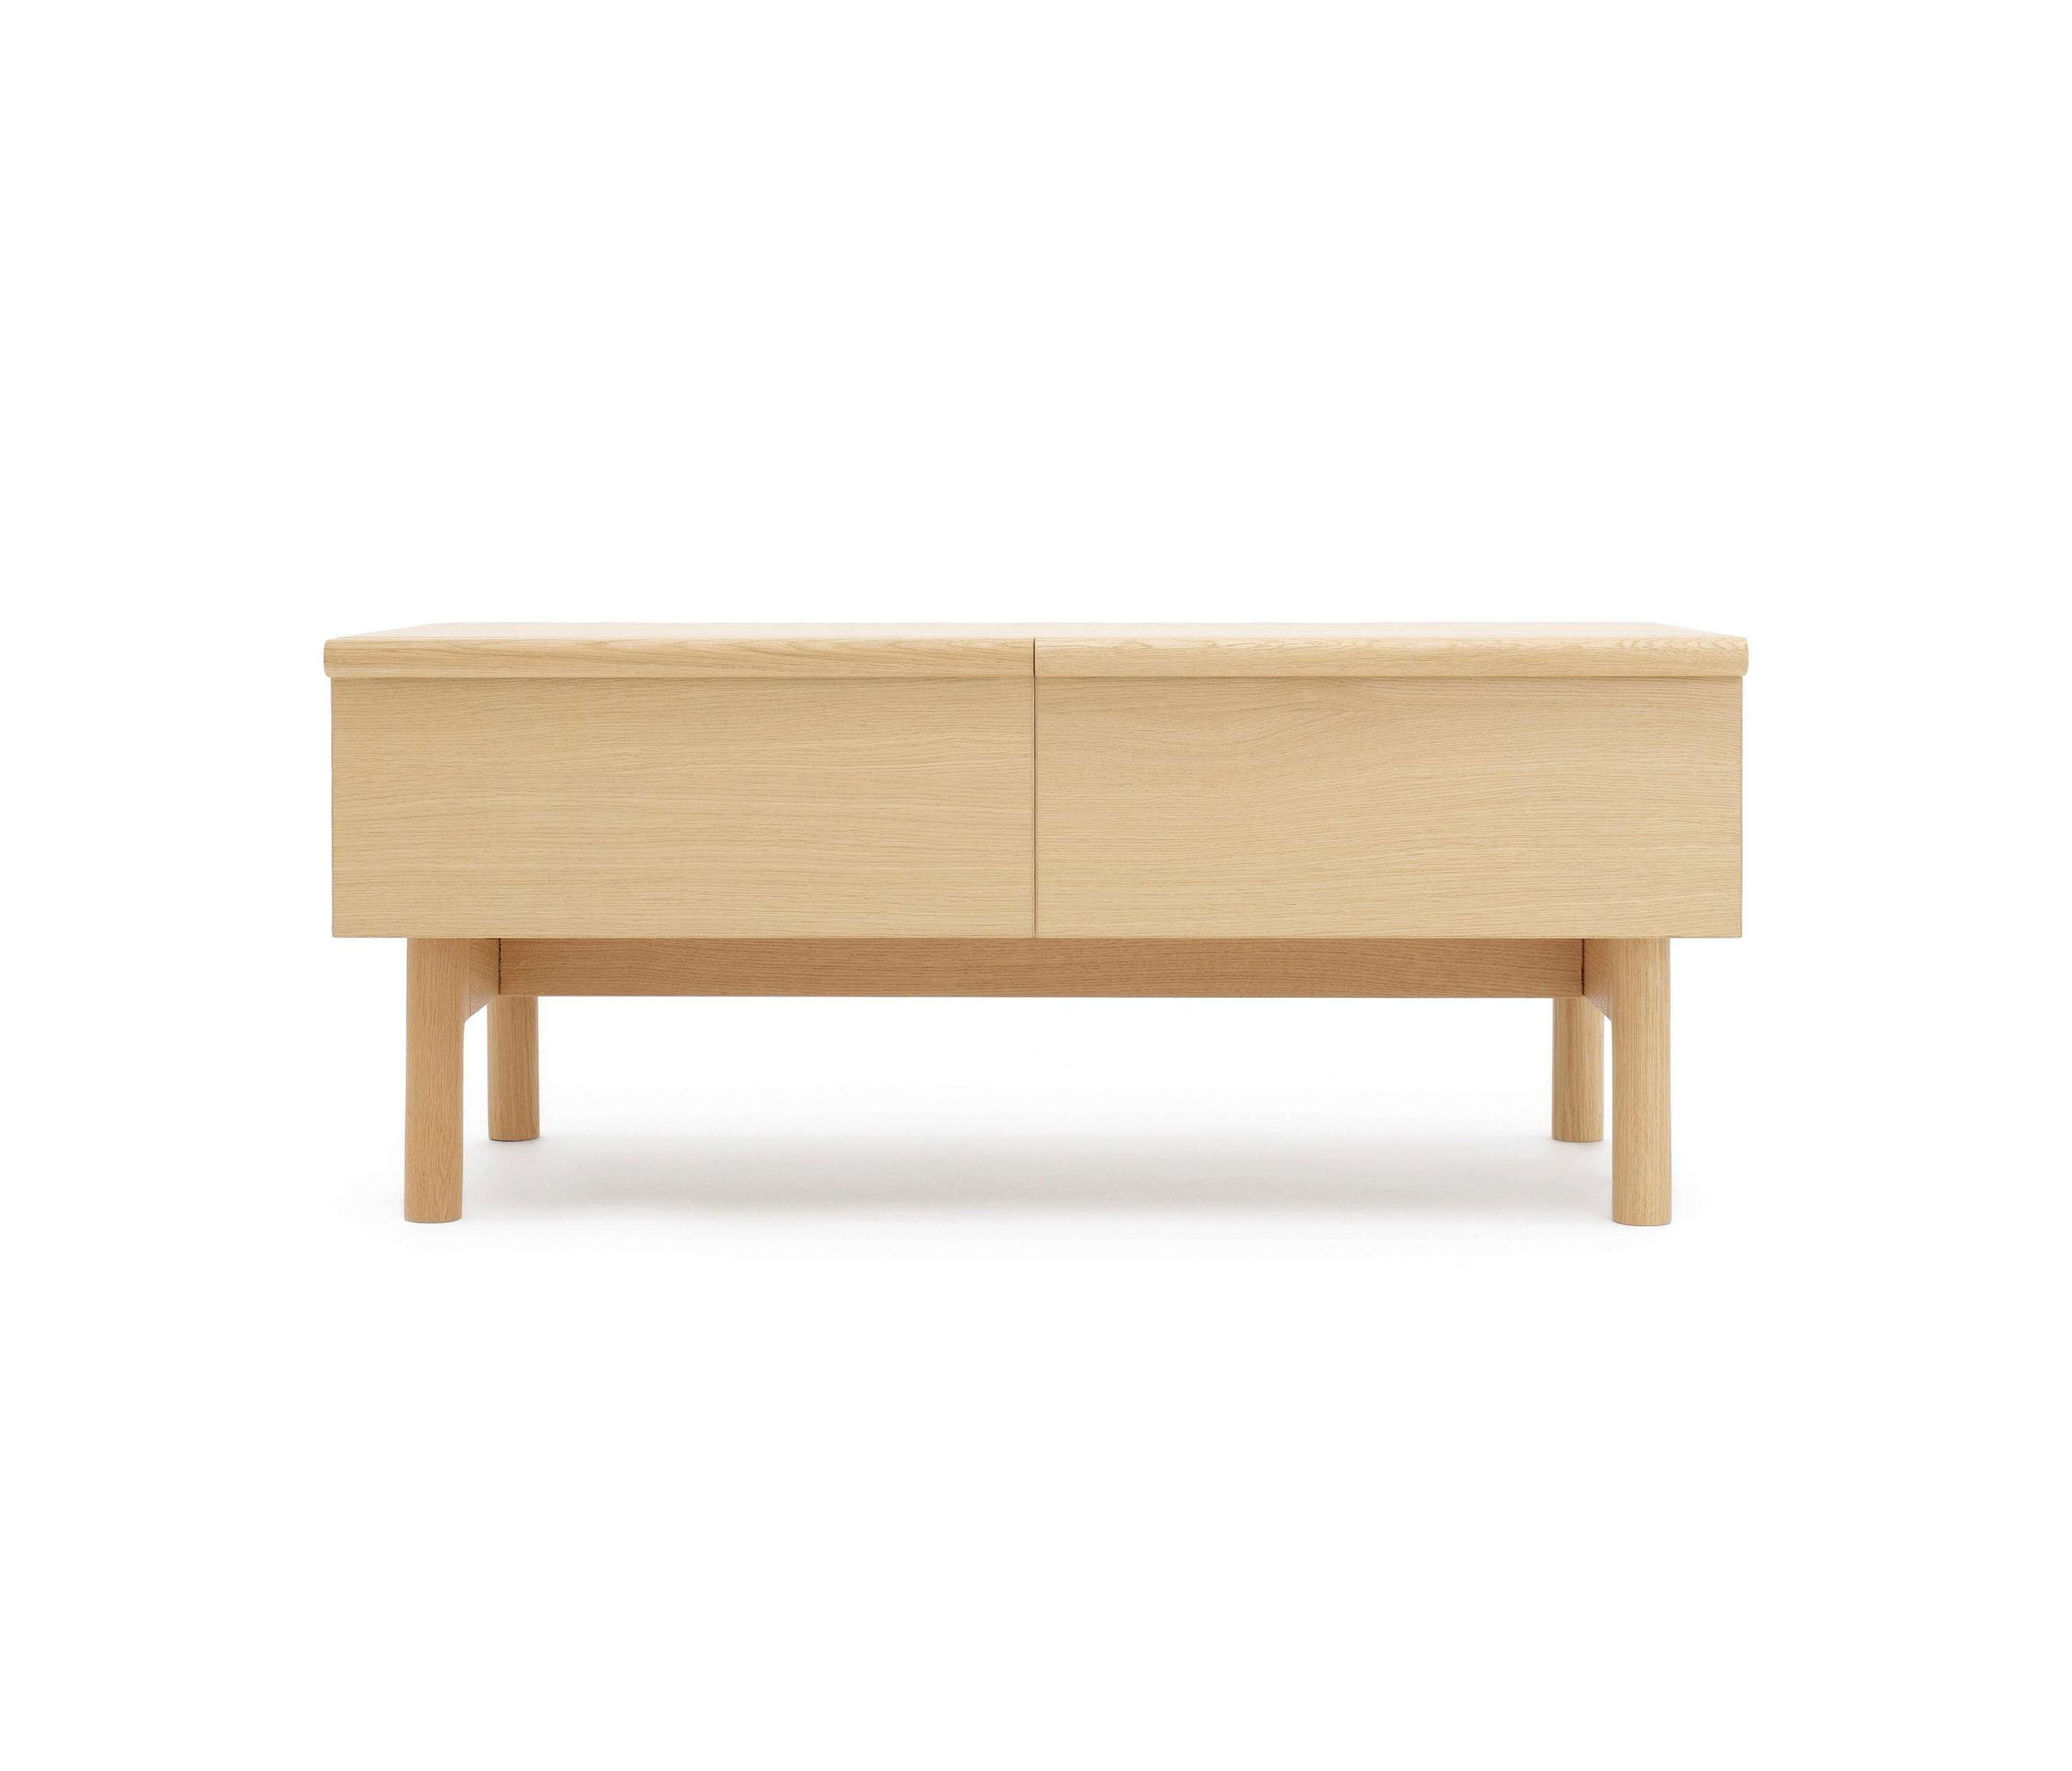 Low Sideboard With Two Drawers – Sideboards From Bautier | Architonic Regarding Low Sideboards (View 12 of 20)